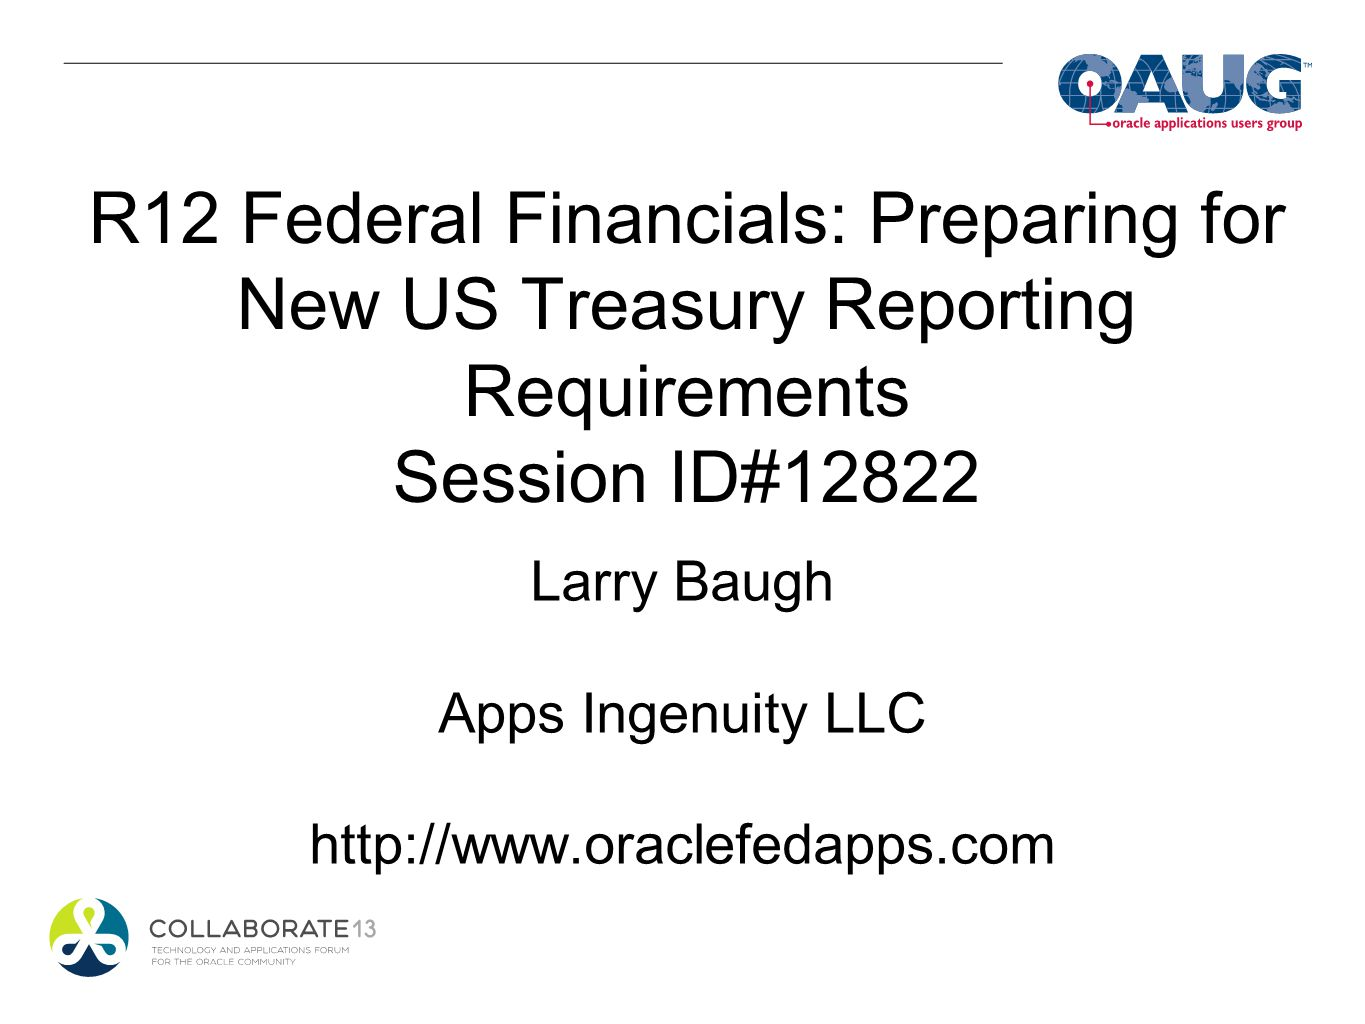 Larry Baugh Apps Ingenuity LLC http://www.oraclefedapps.com